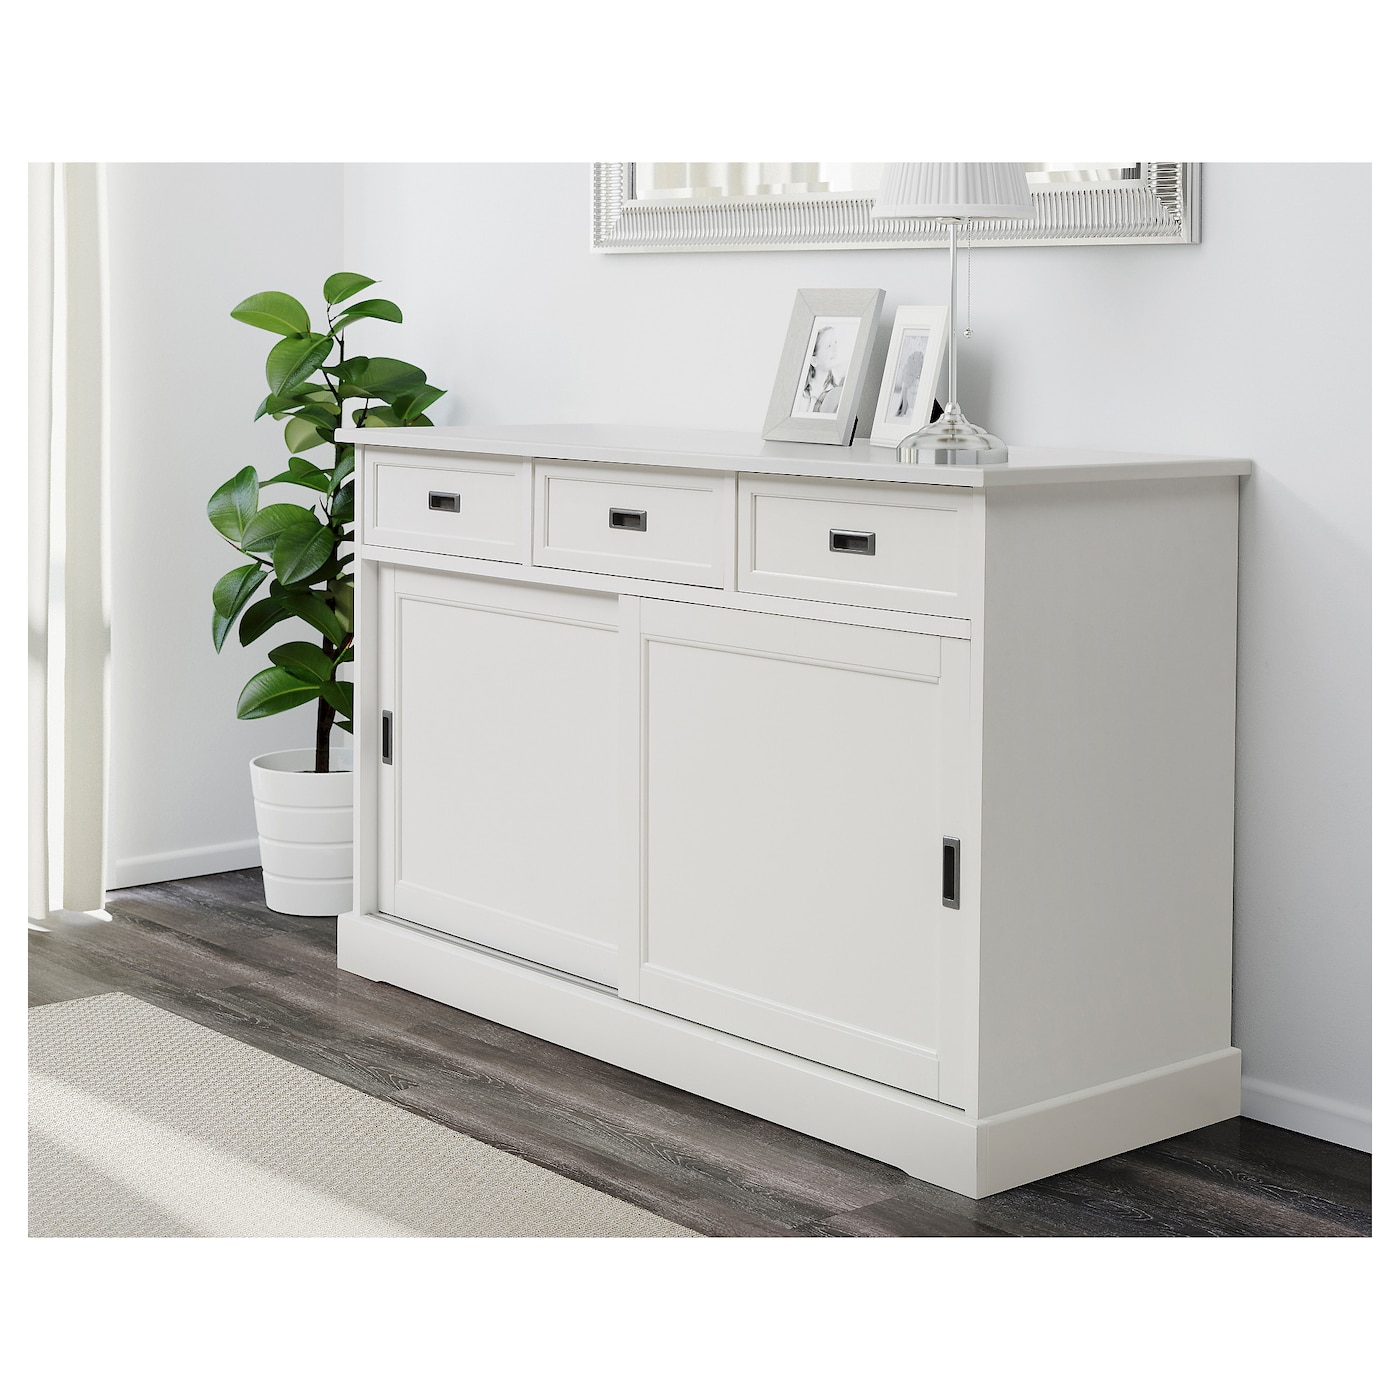 Larsfrid Sideboard Basic Unit White Ikea